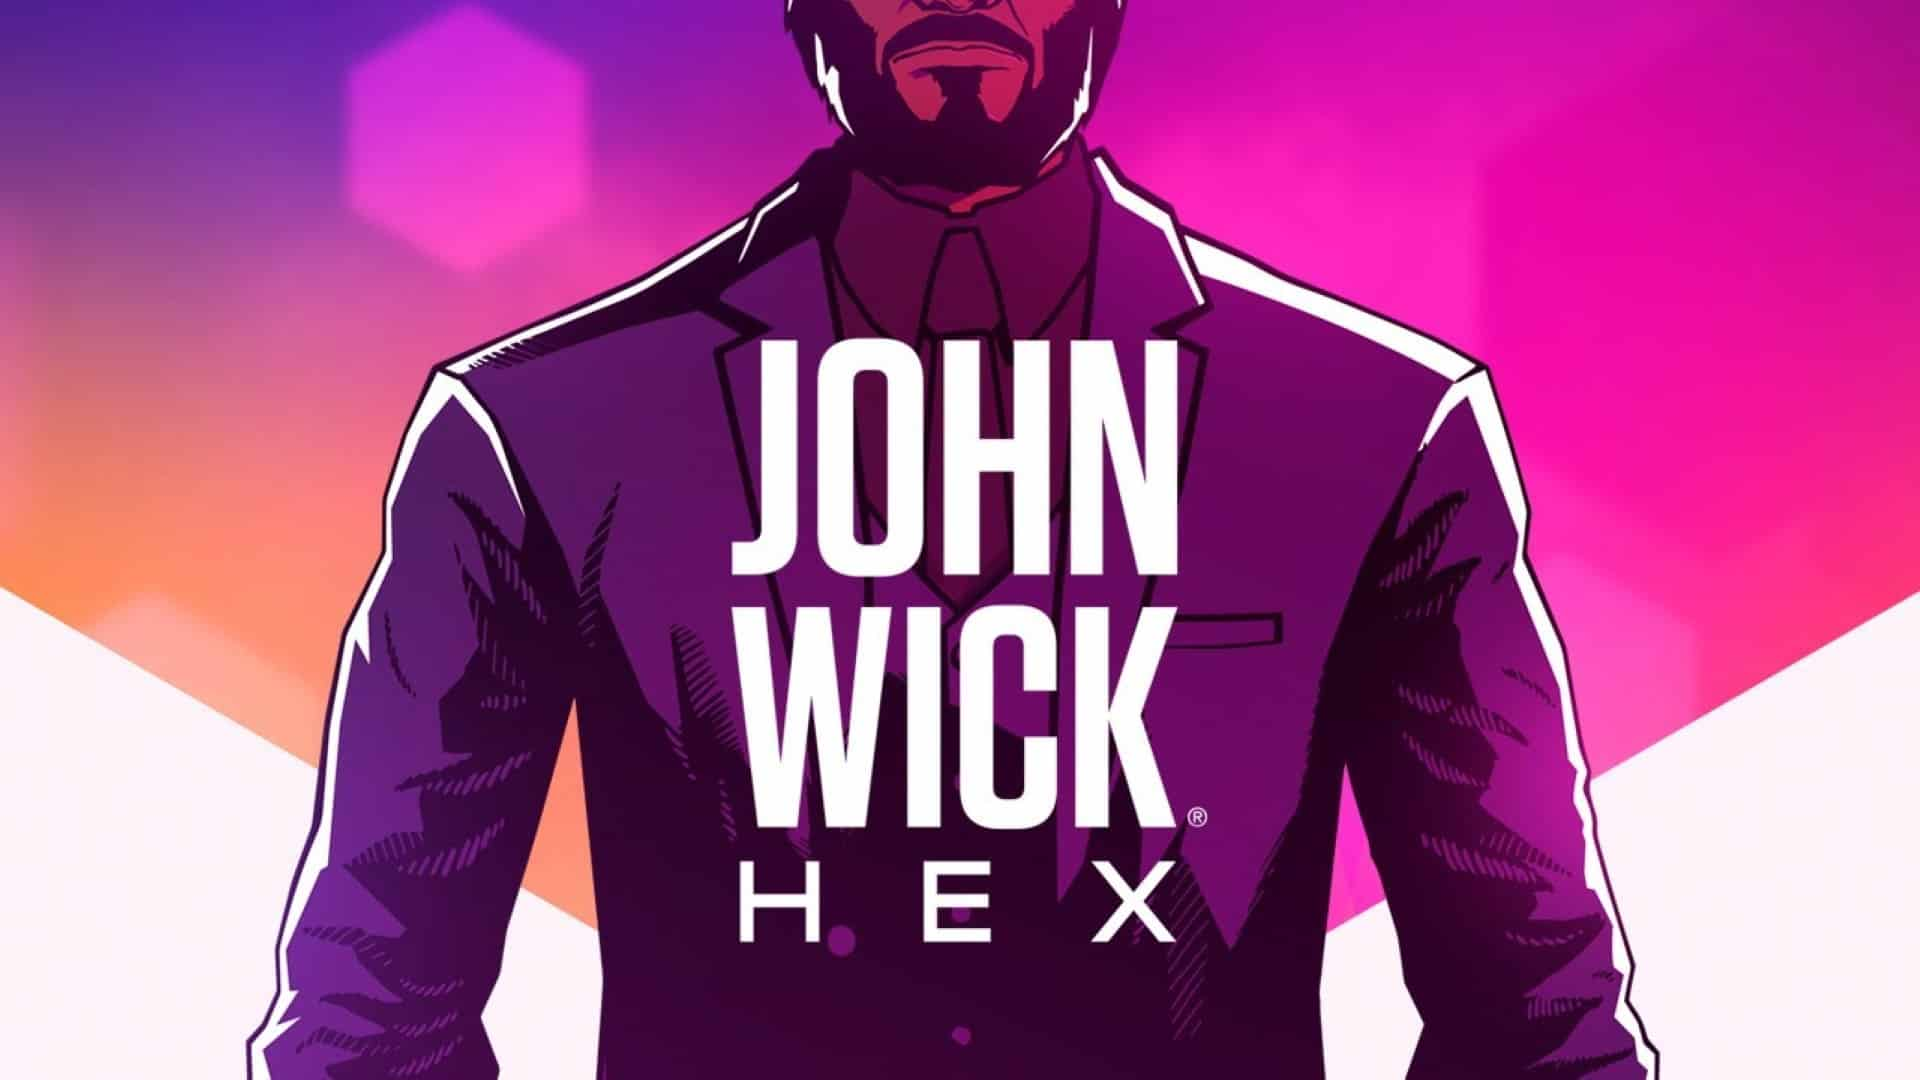 John Wick Hex Is Out Now On Playstation 4, Xbox One & Nintendo Switch